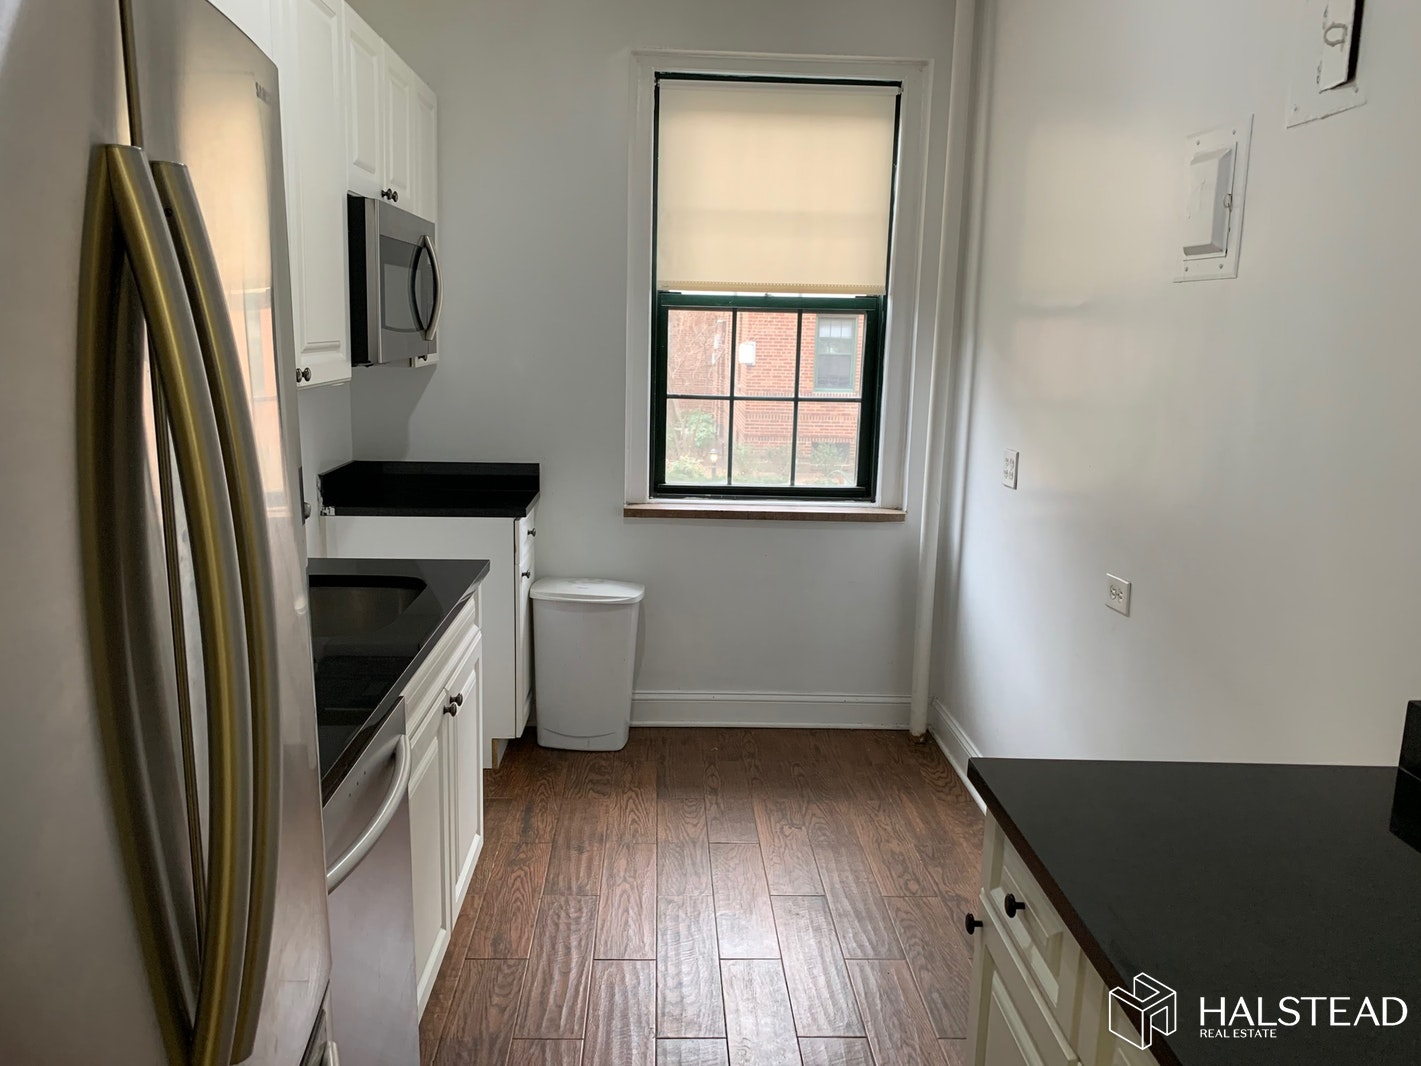 RENOVATED AMAZING 2 BEDROOM